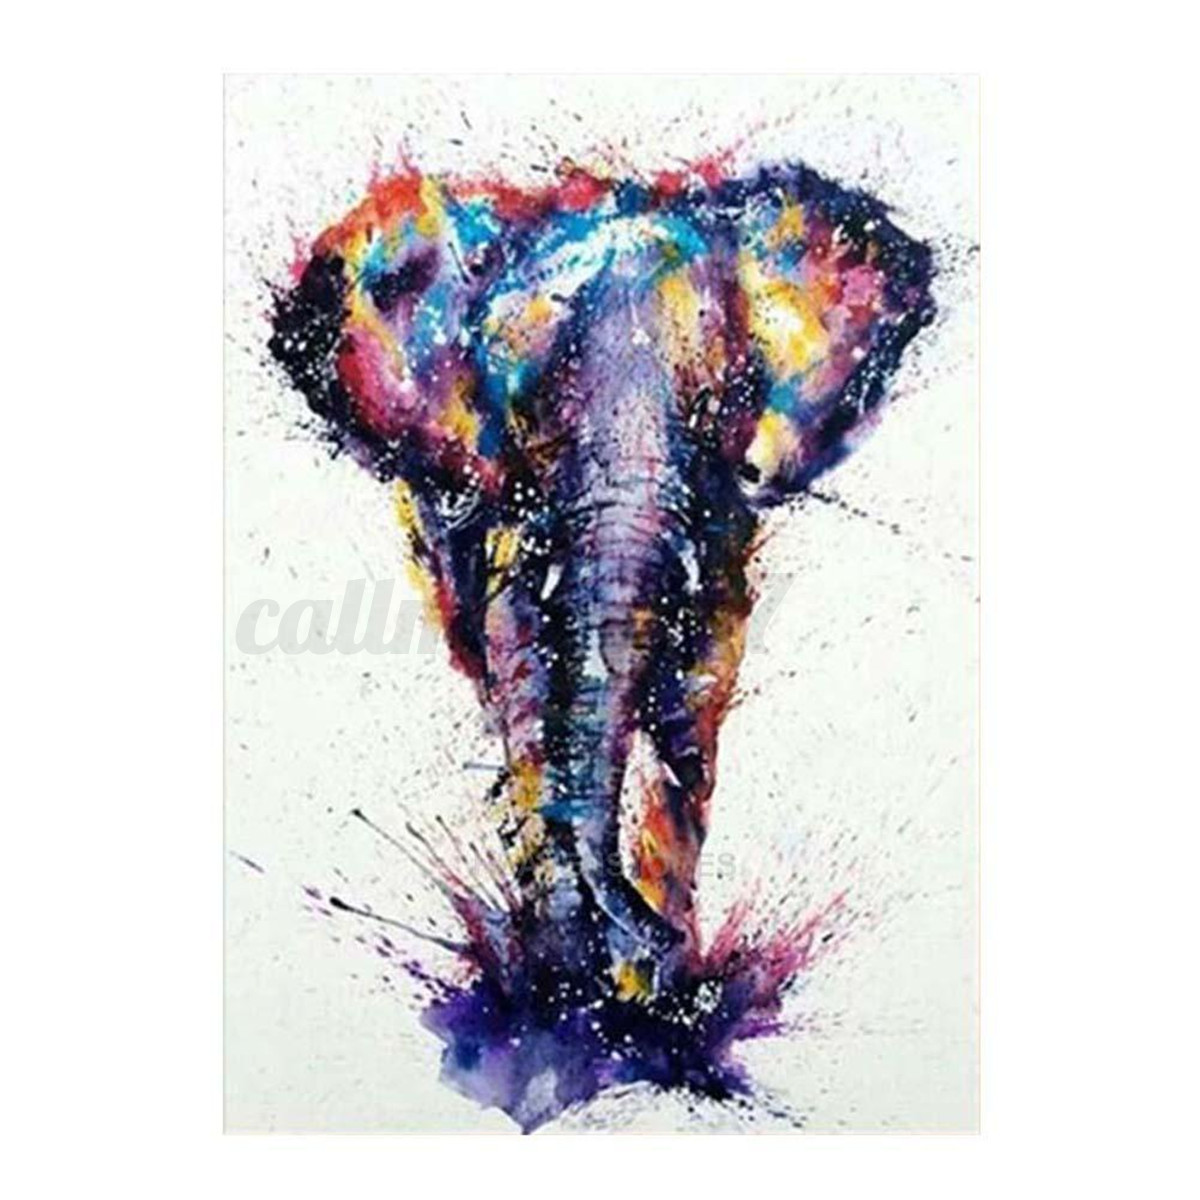 Diy d abstract diamond canvas embroidery painting cross